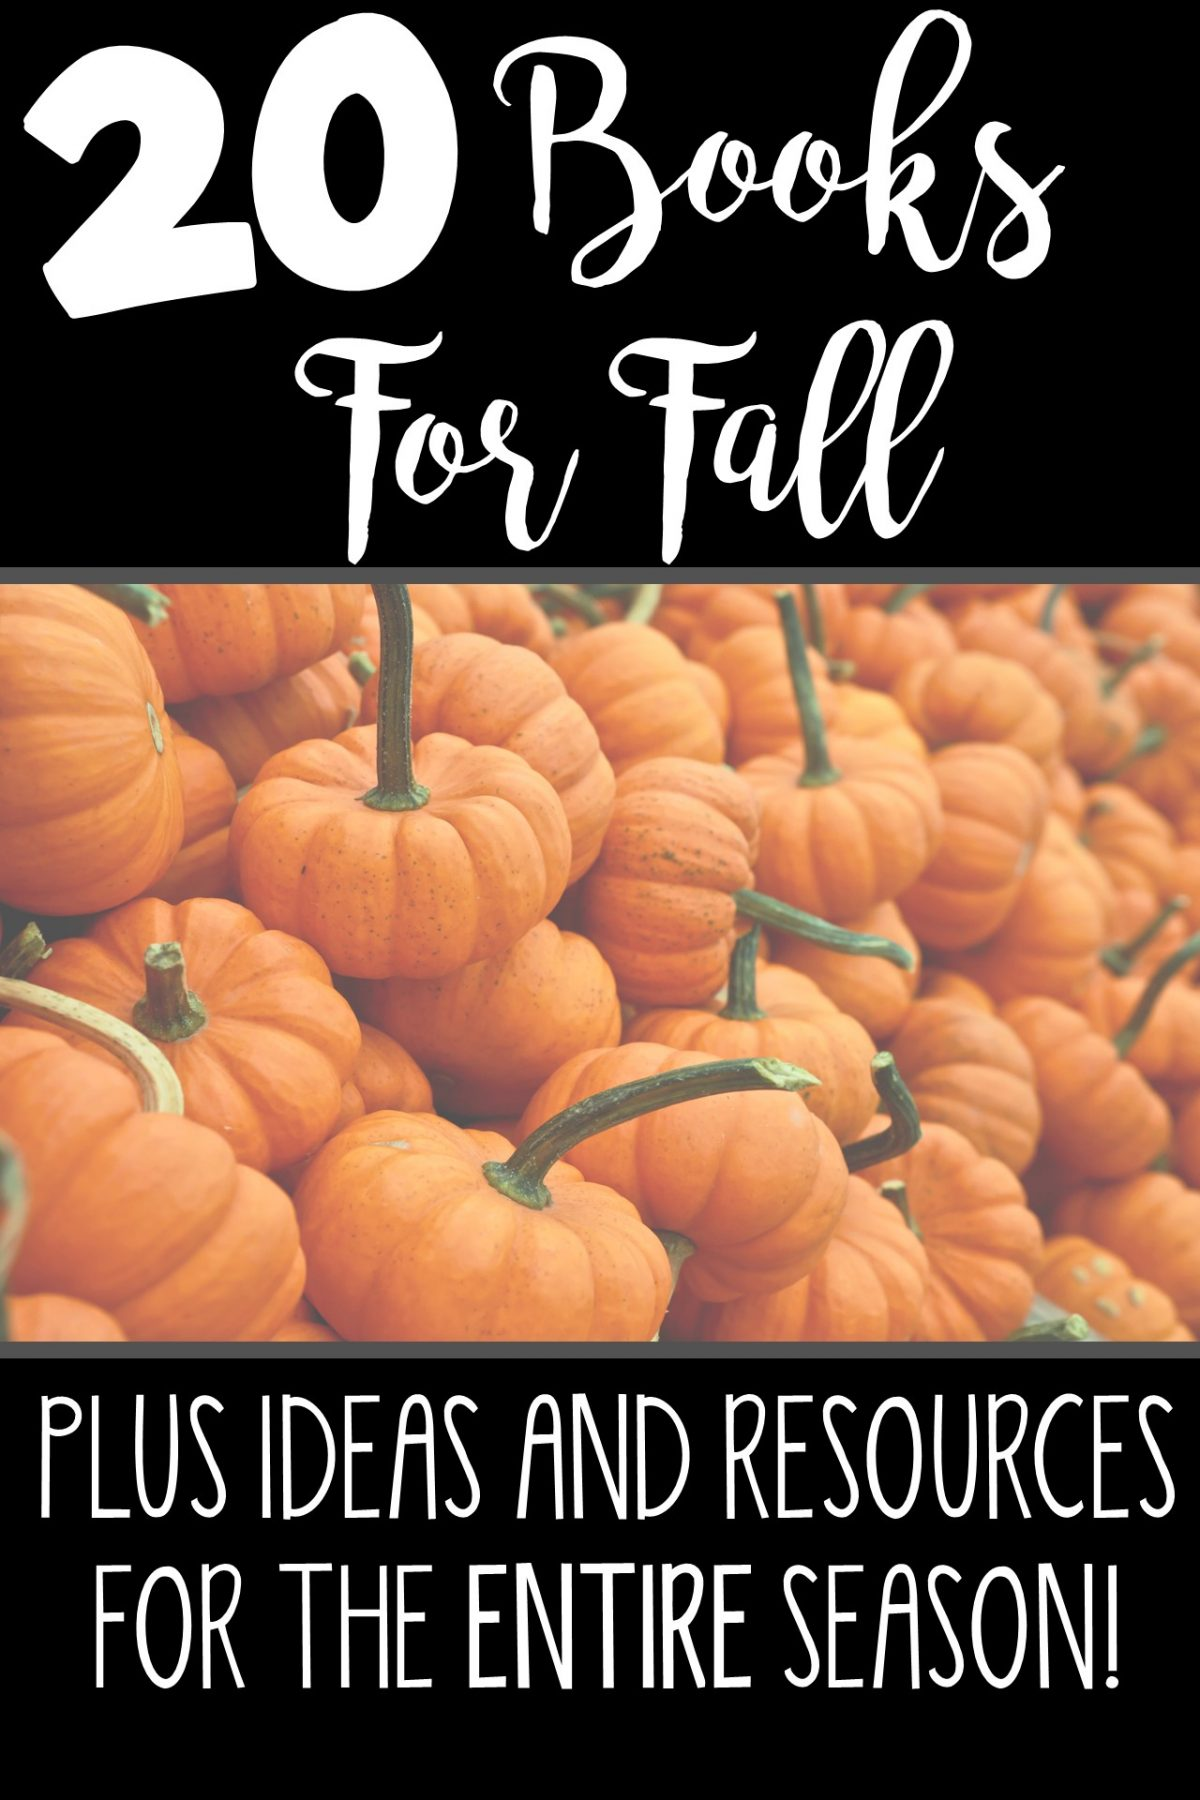 Check out 20 books for the entire fall season. Also includes tons of ideas and resources for Grandparent's Day, Labor Day, Halloween and Thanksgiving! Plan your entire fall in one post!